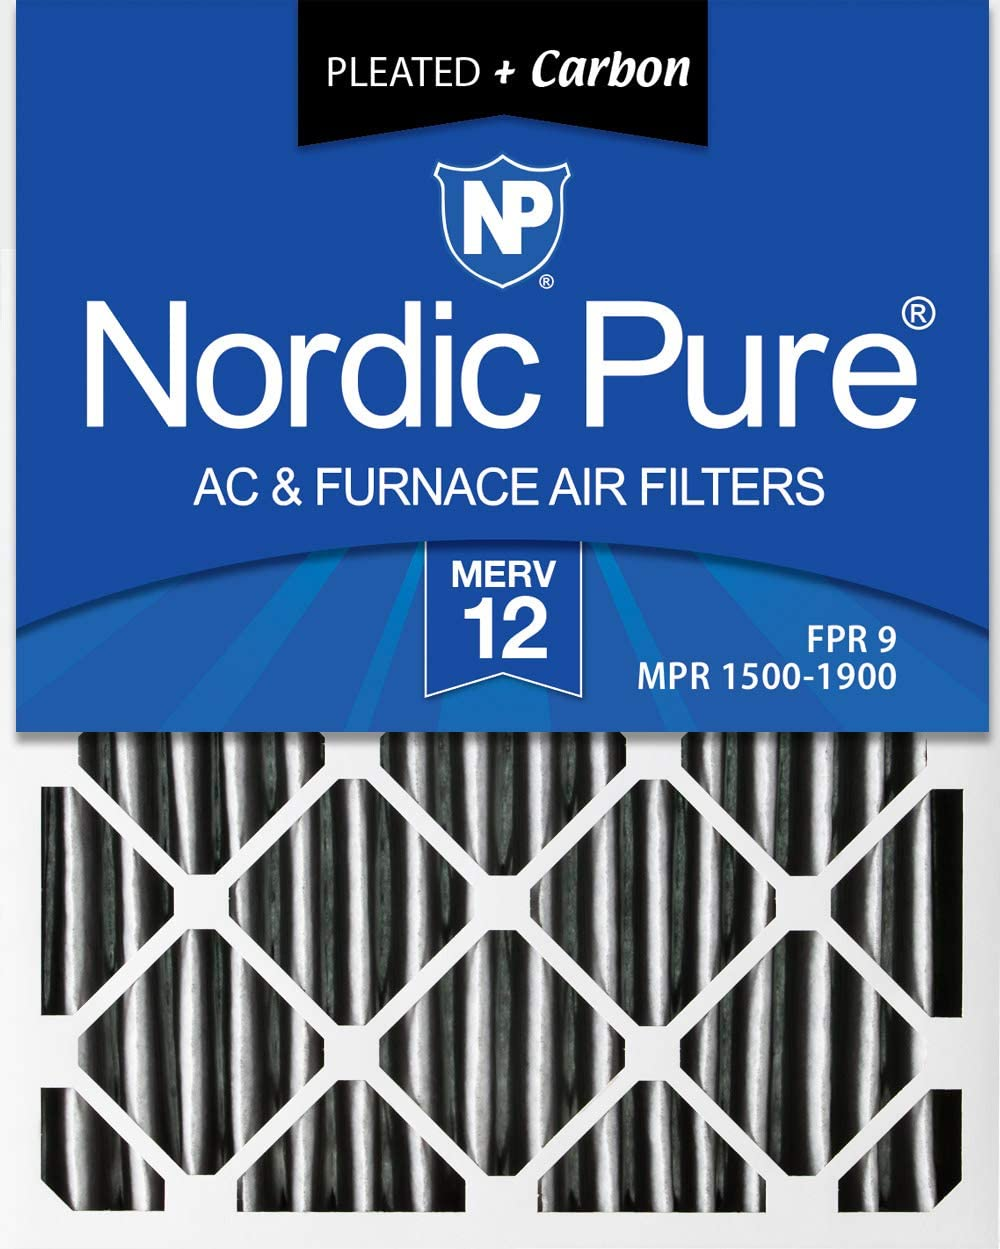 Nordic Pure 11/_1//4x11/_1//4x1 Exact MERV 12 Tru Mini Pleat AC Furnace Air Filters 6 Pack